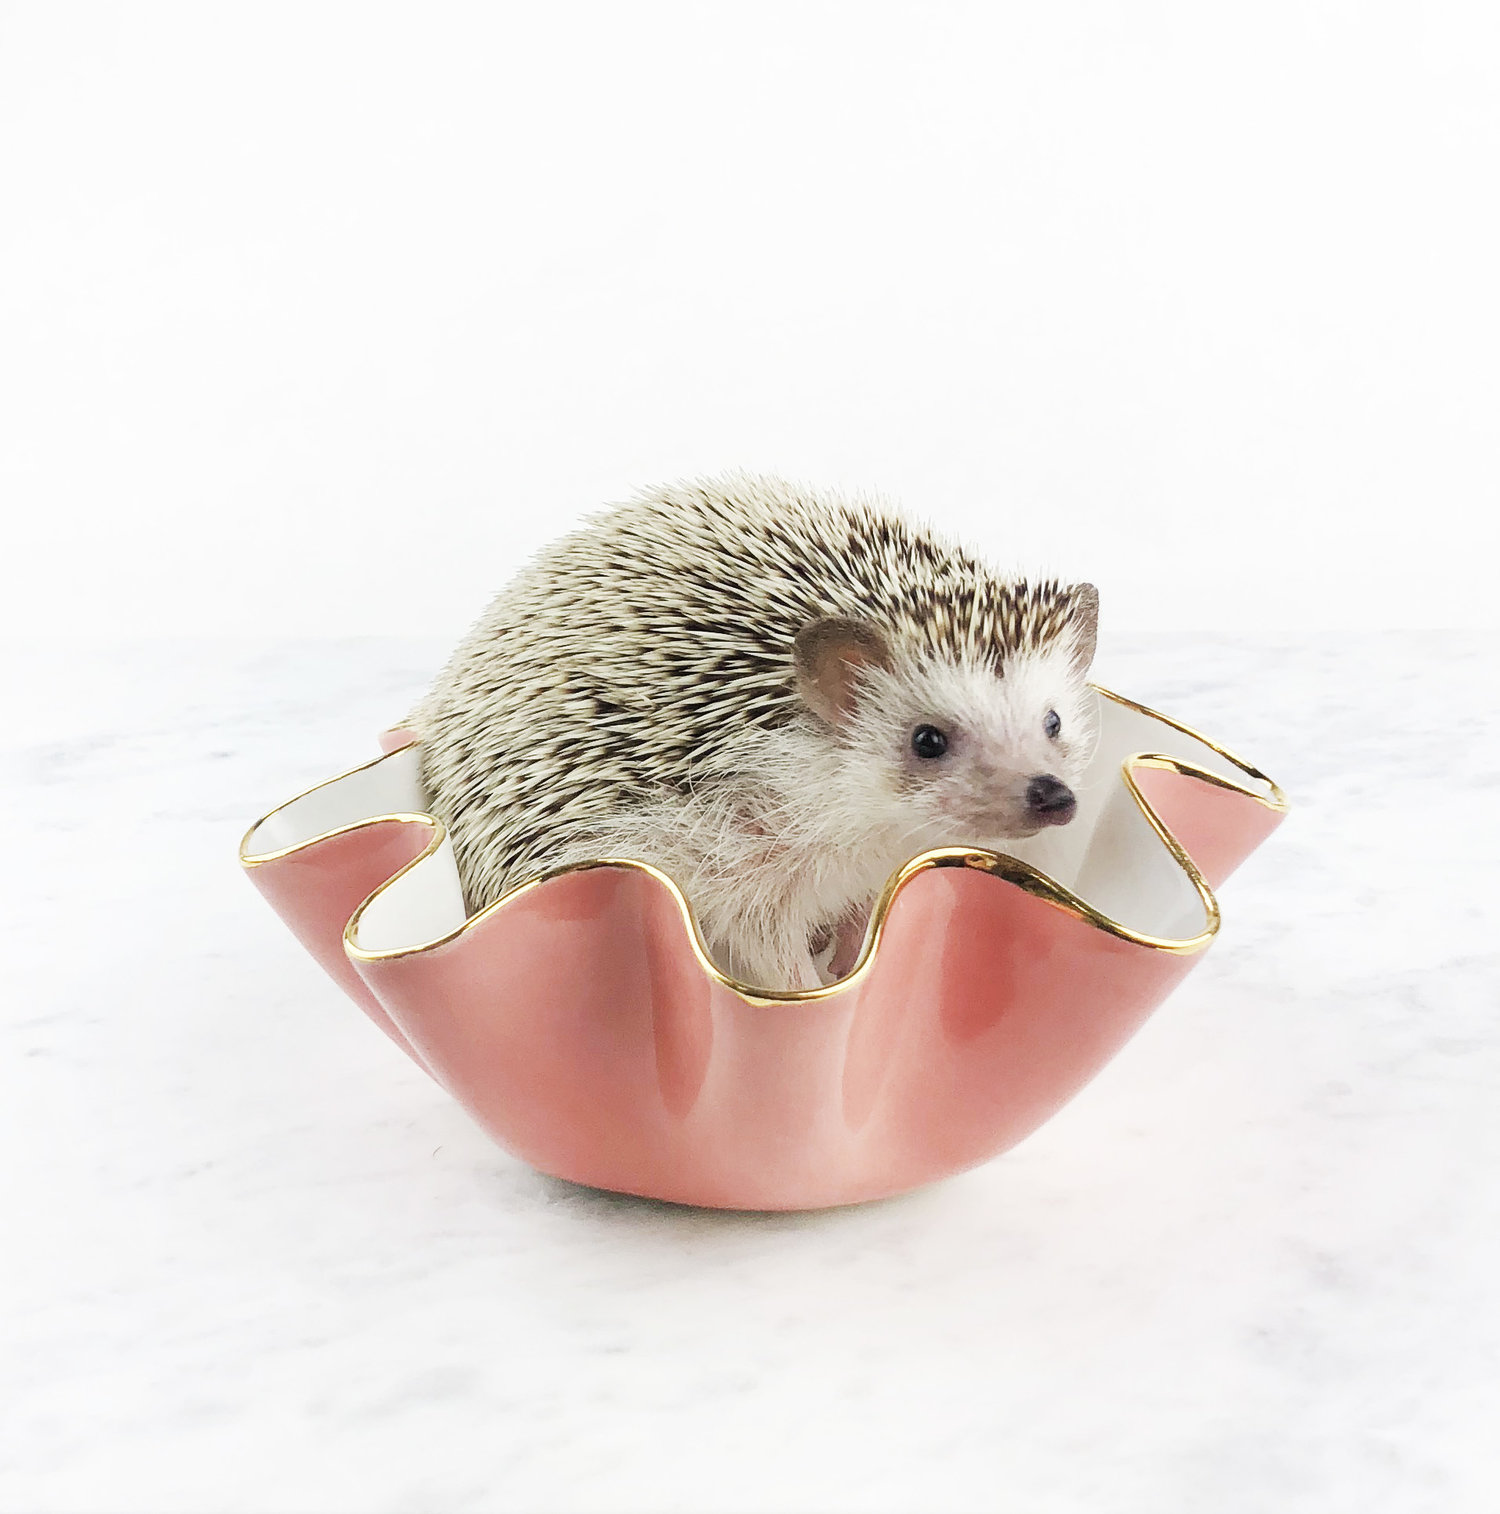 Penny+the+Hedgehog+in+a+B+size+bowl.jpg